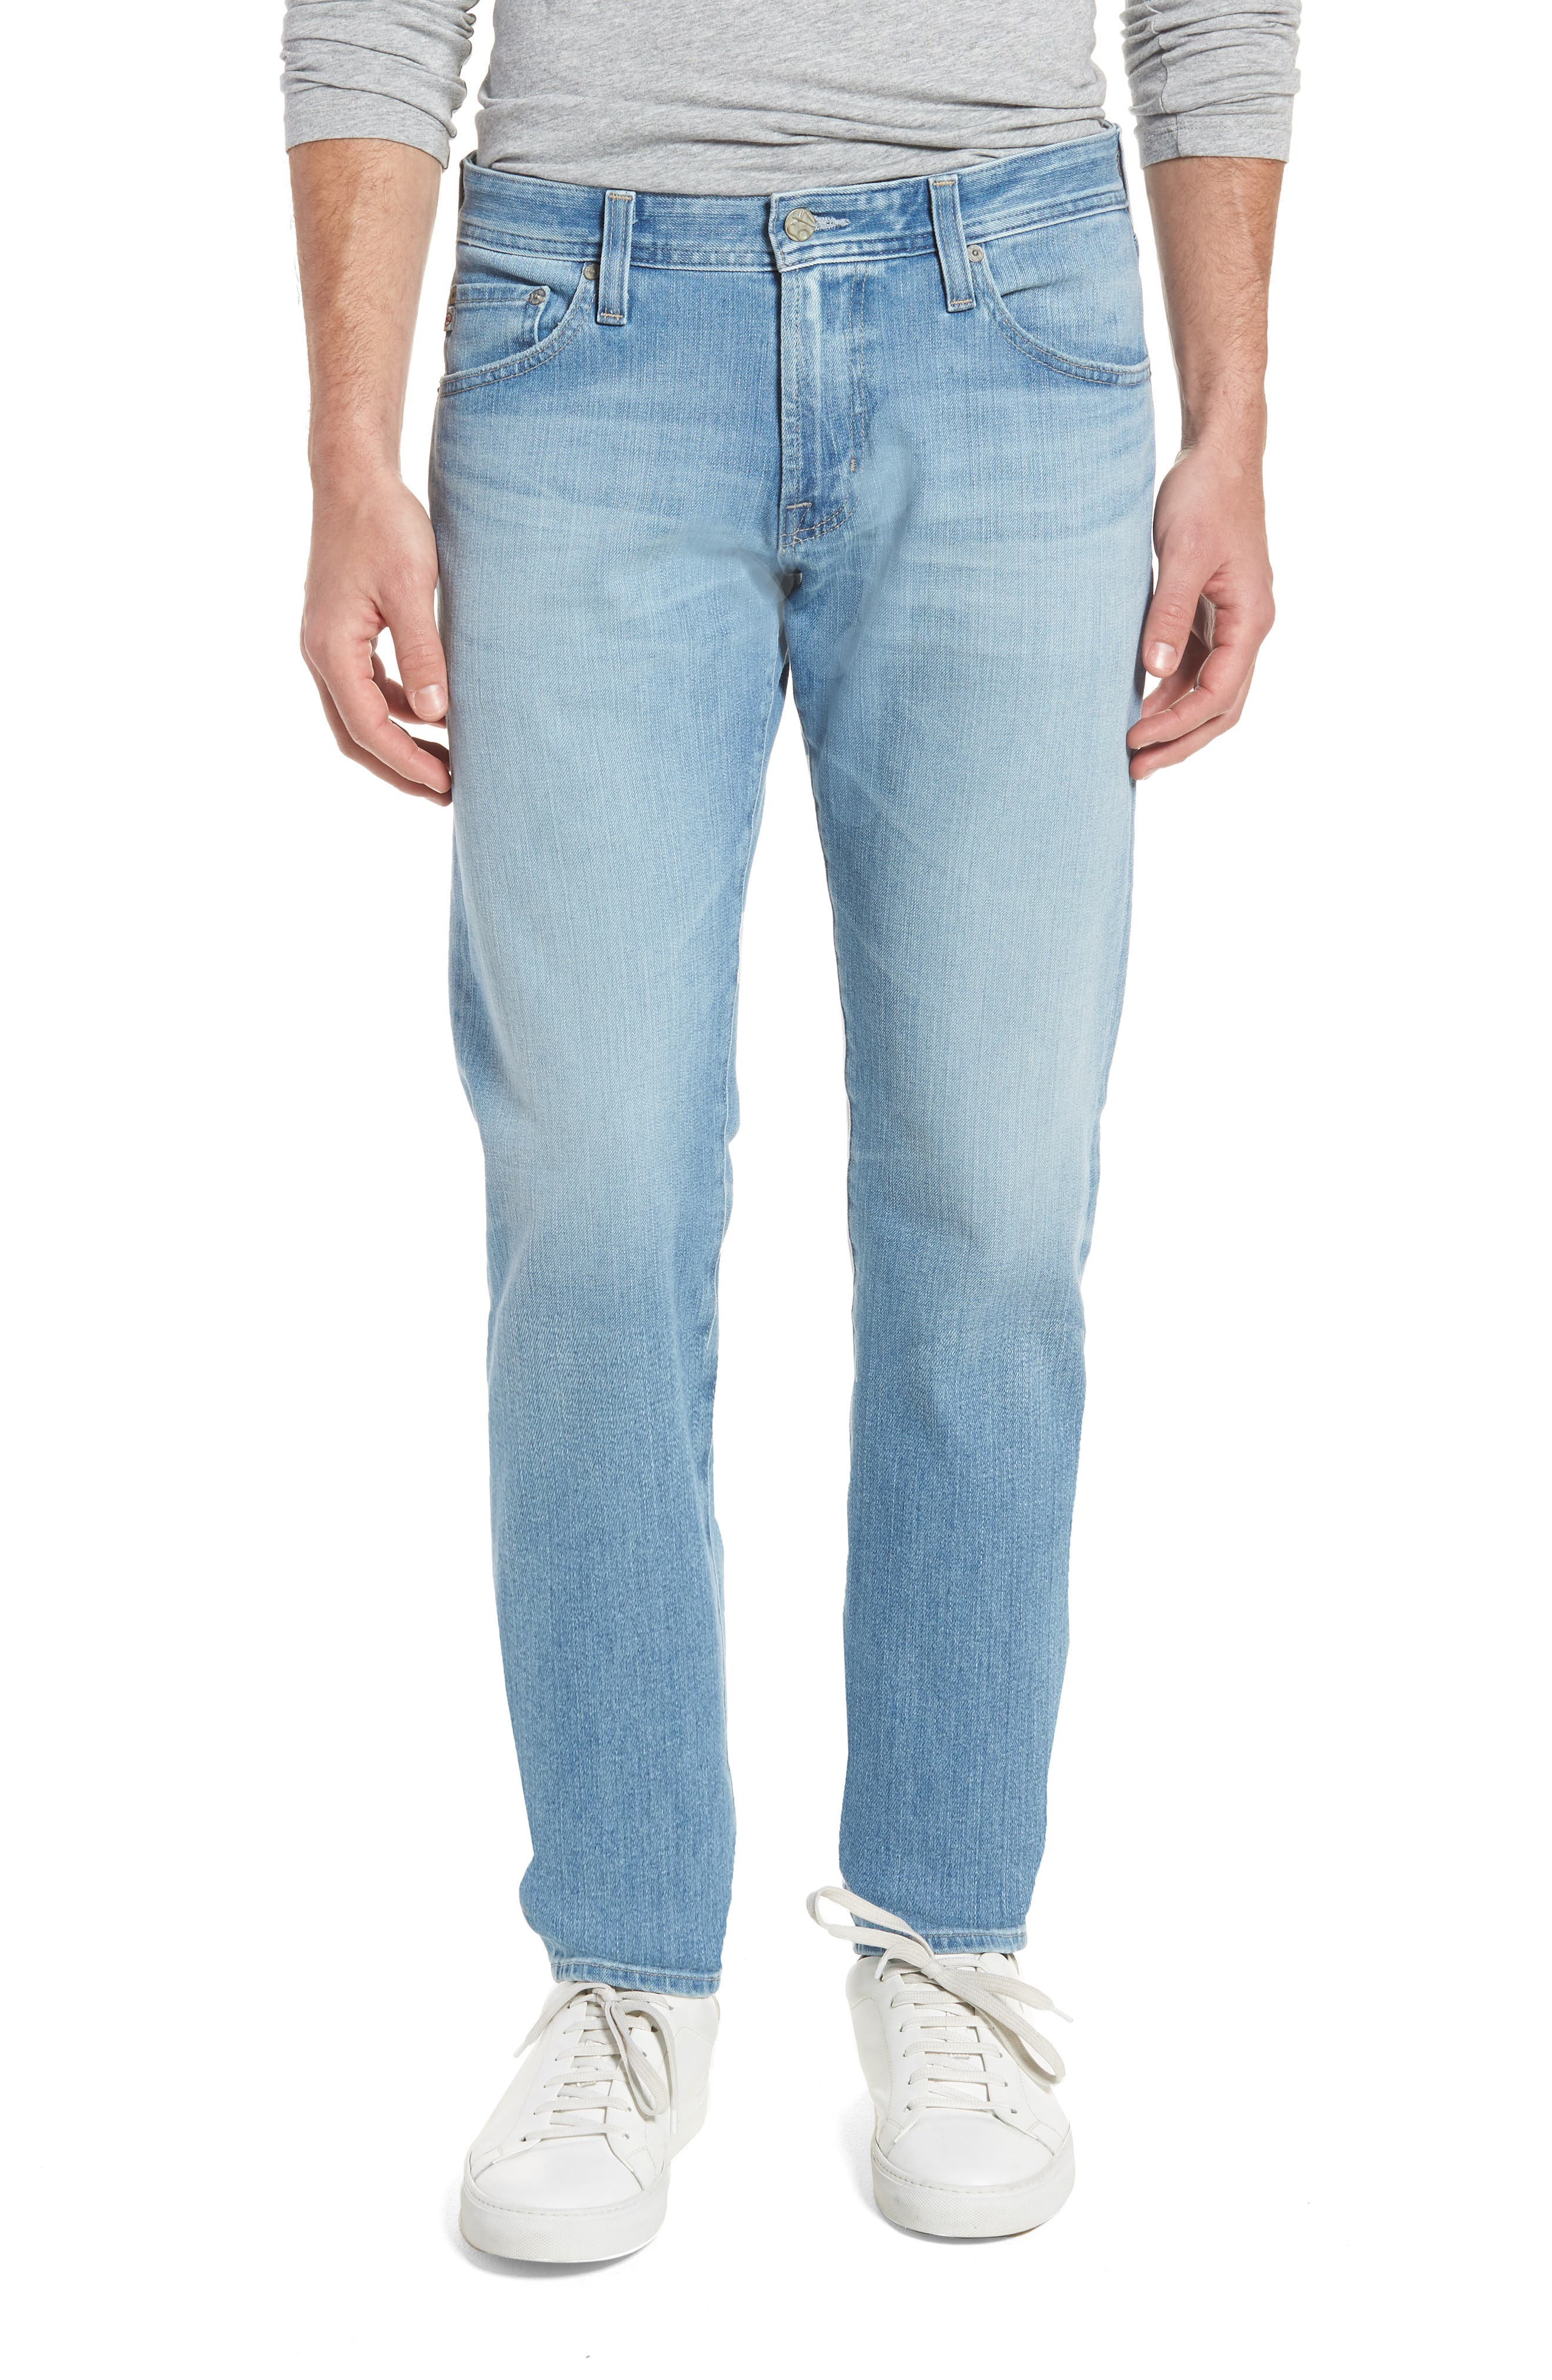 Tellis Slim Fit Jeans,                         Main,                         color, 19 Years Channel